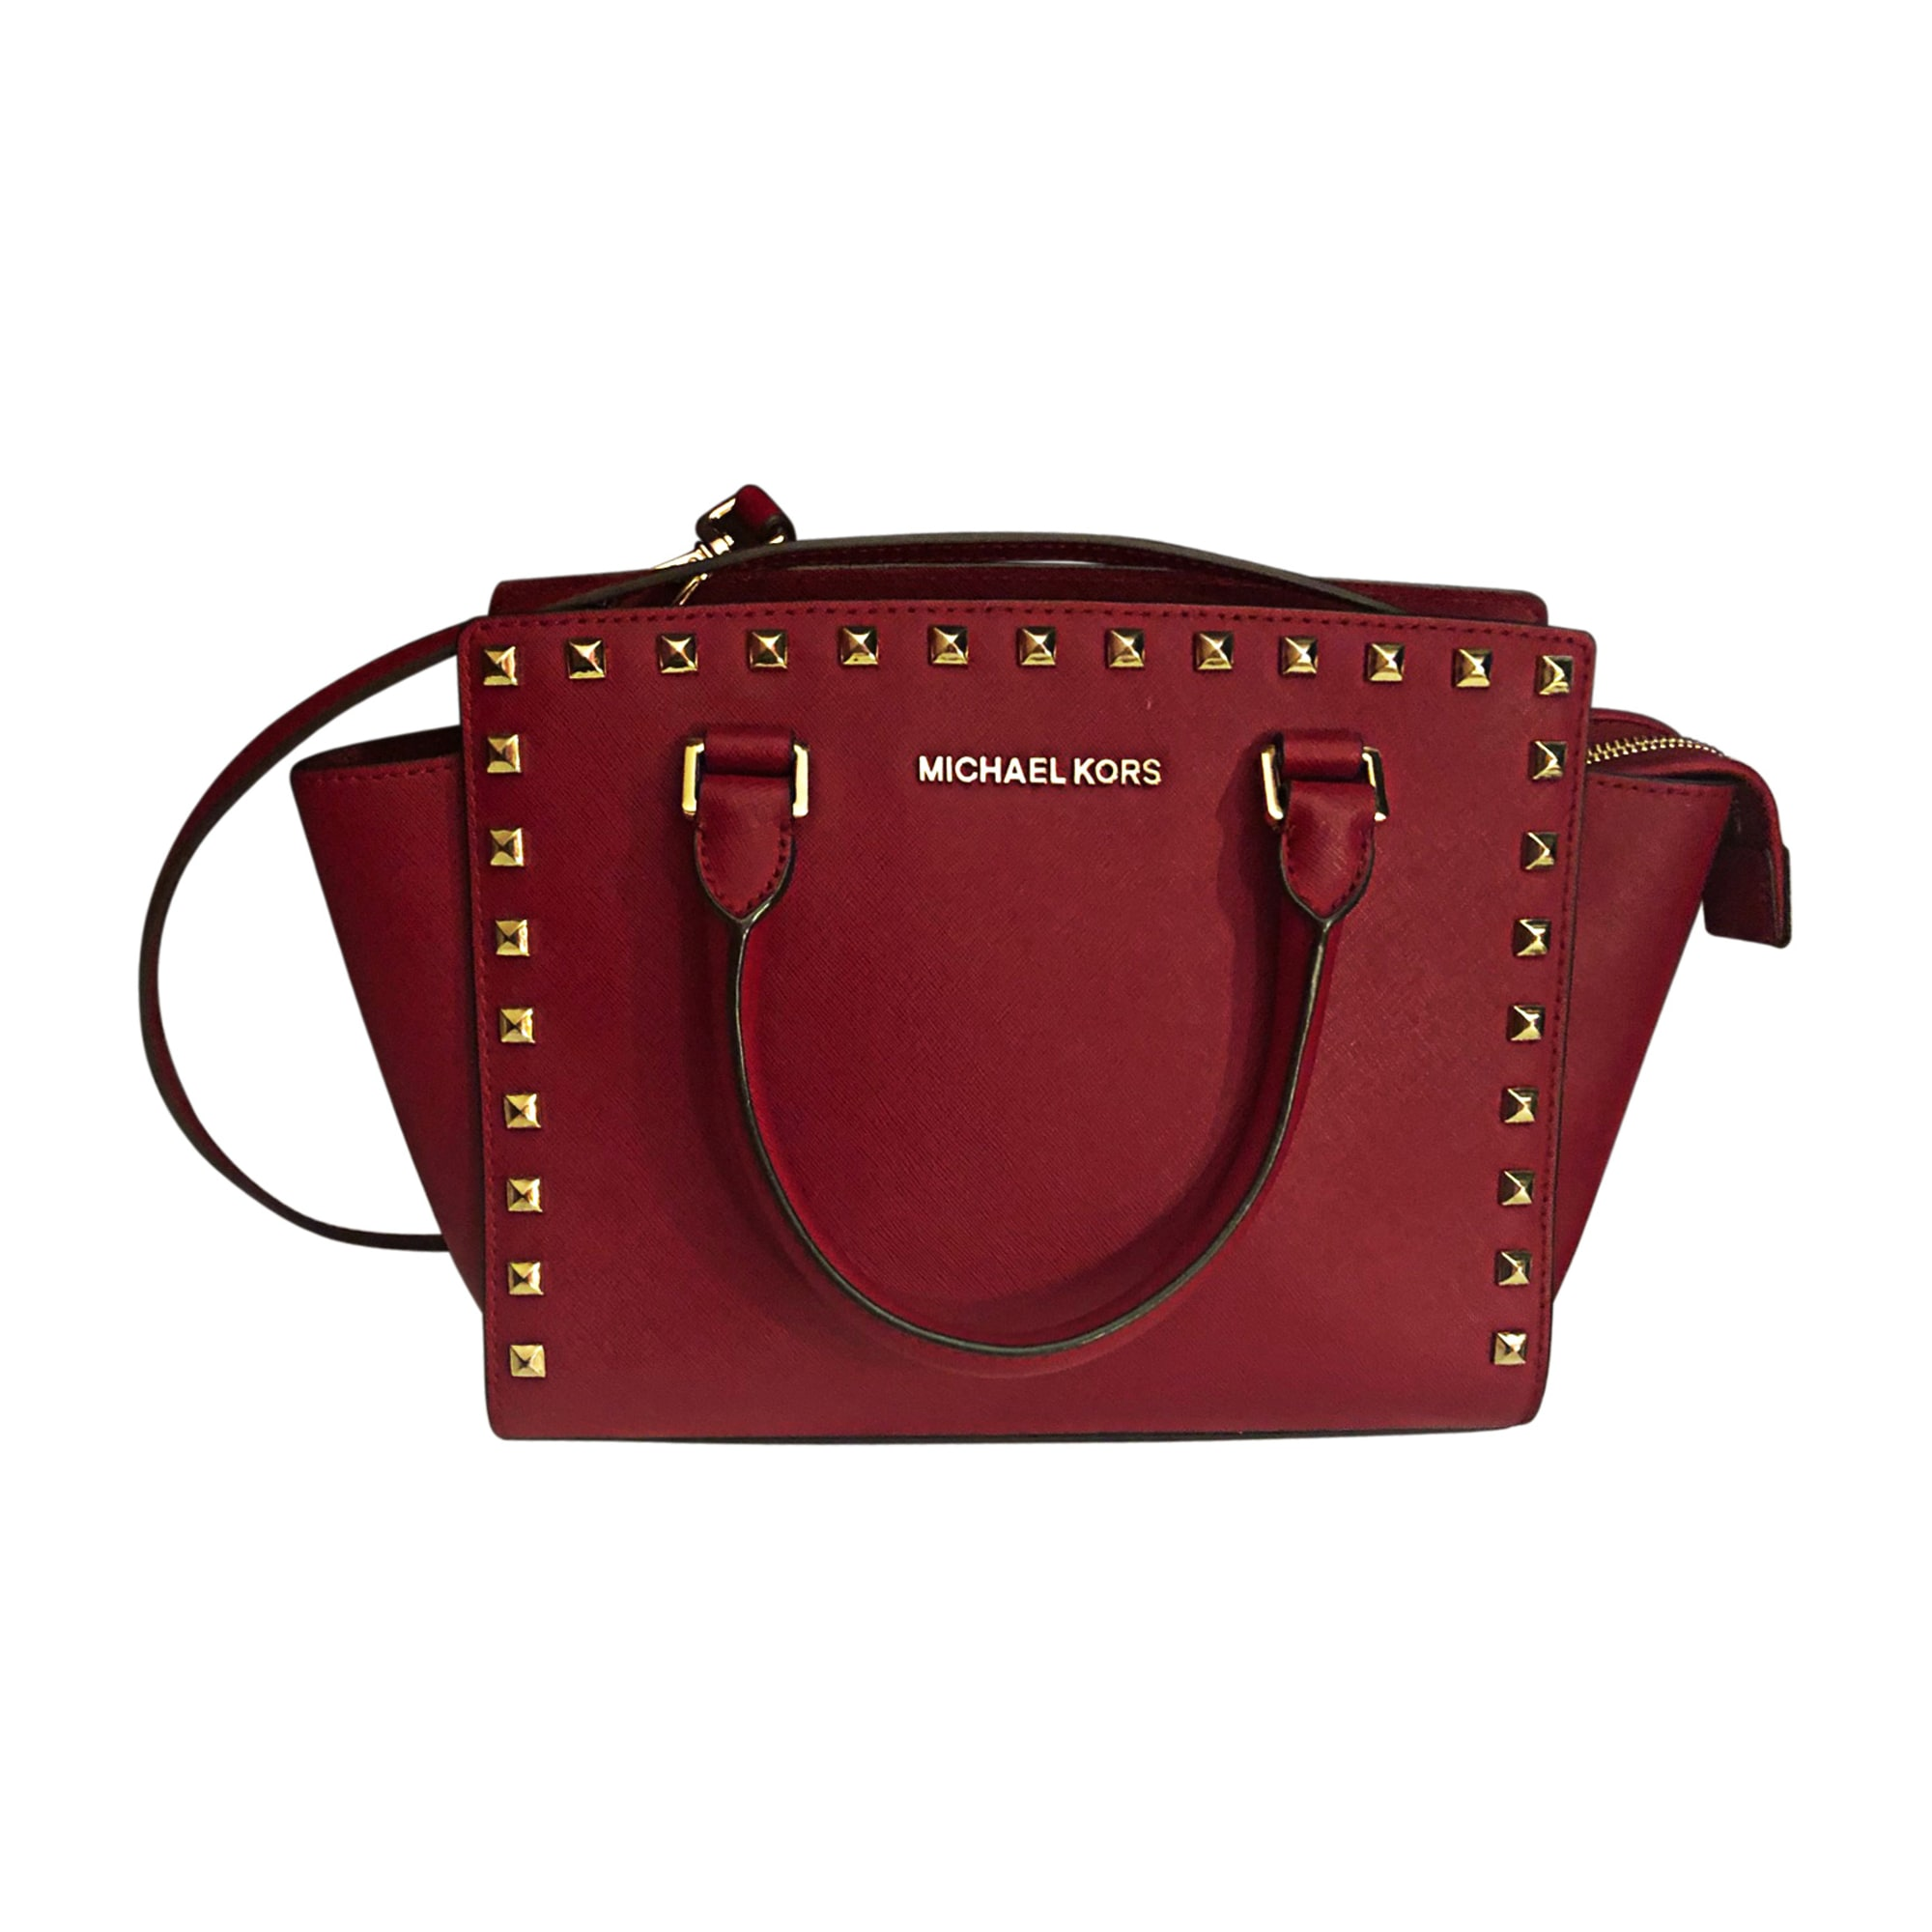 Sac à main en cuir MICHAEL KORS Rouge, bordeaux